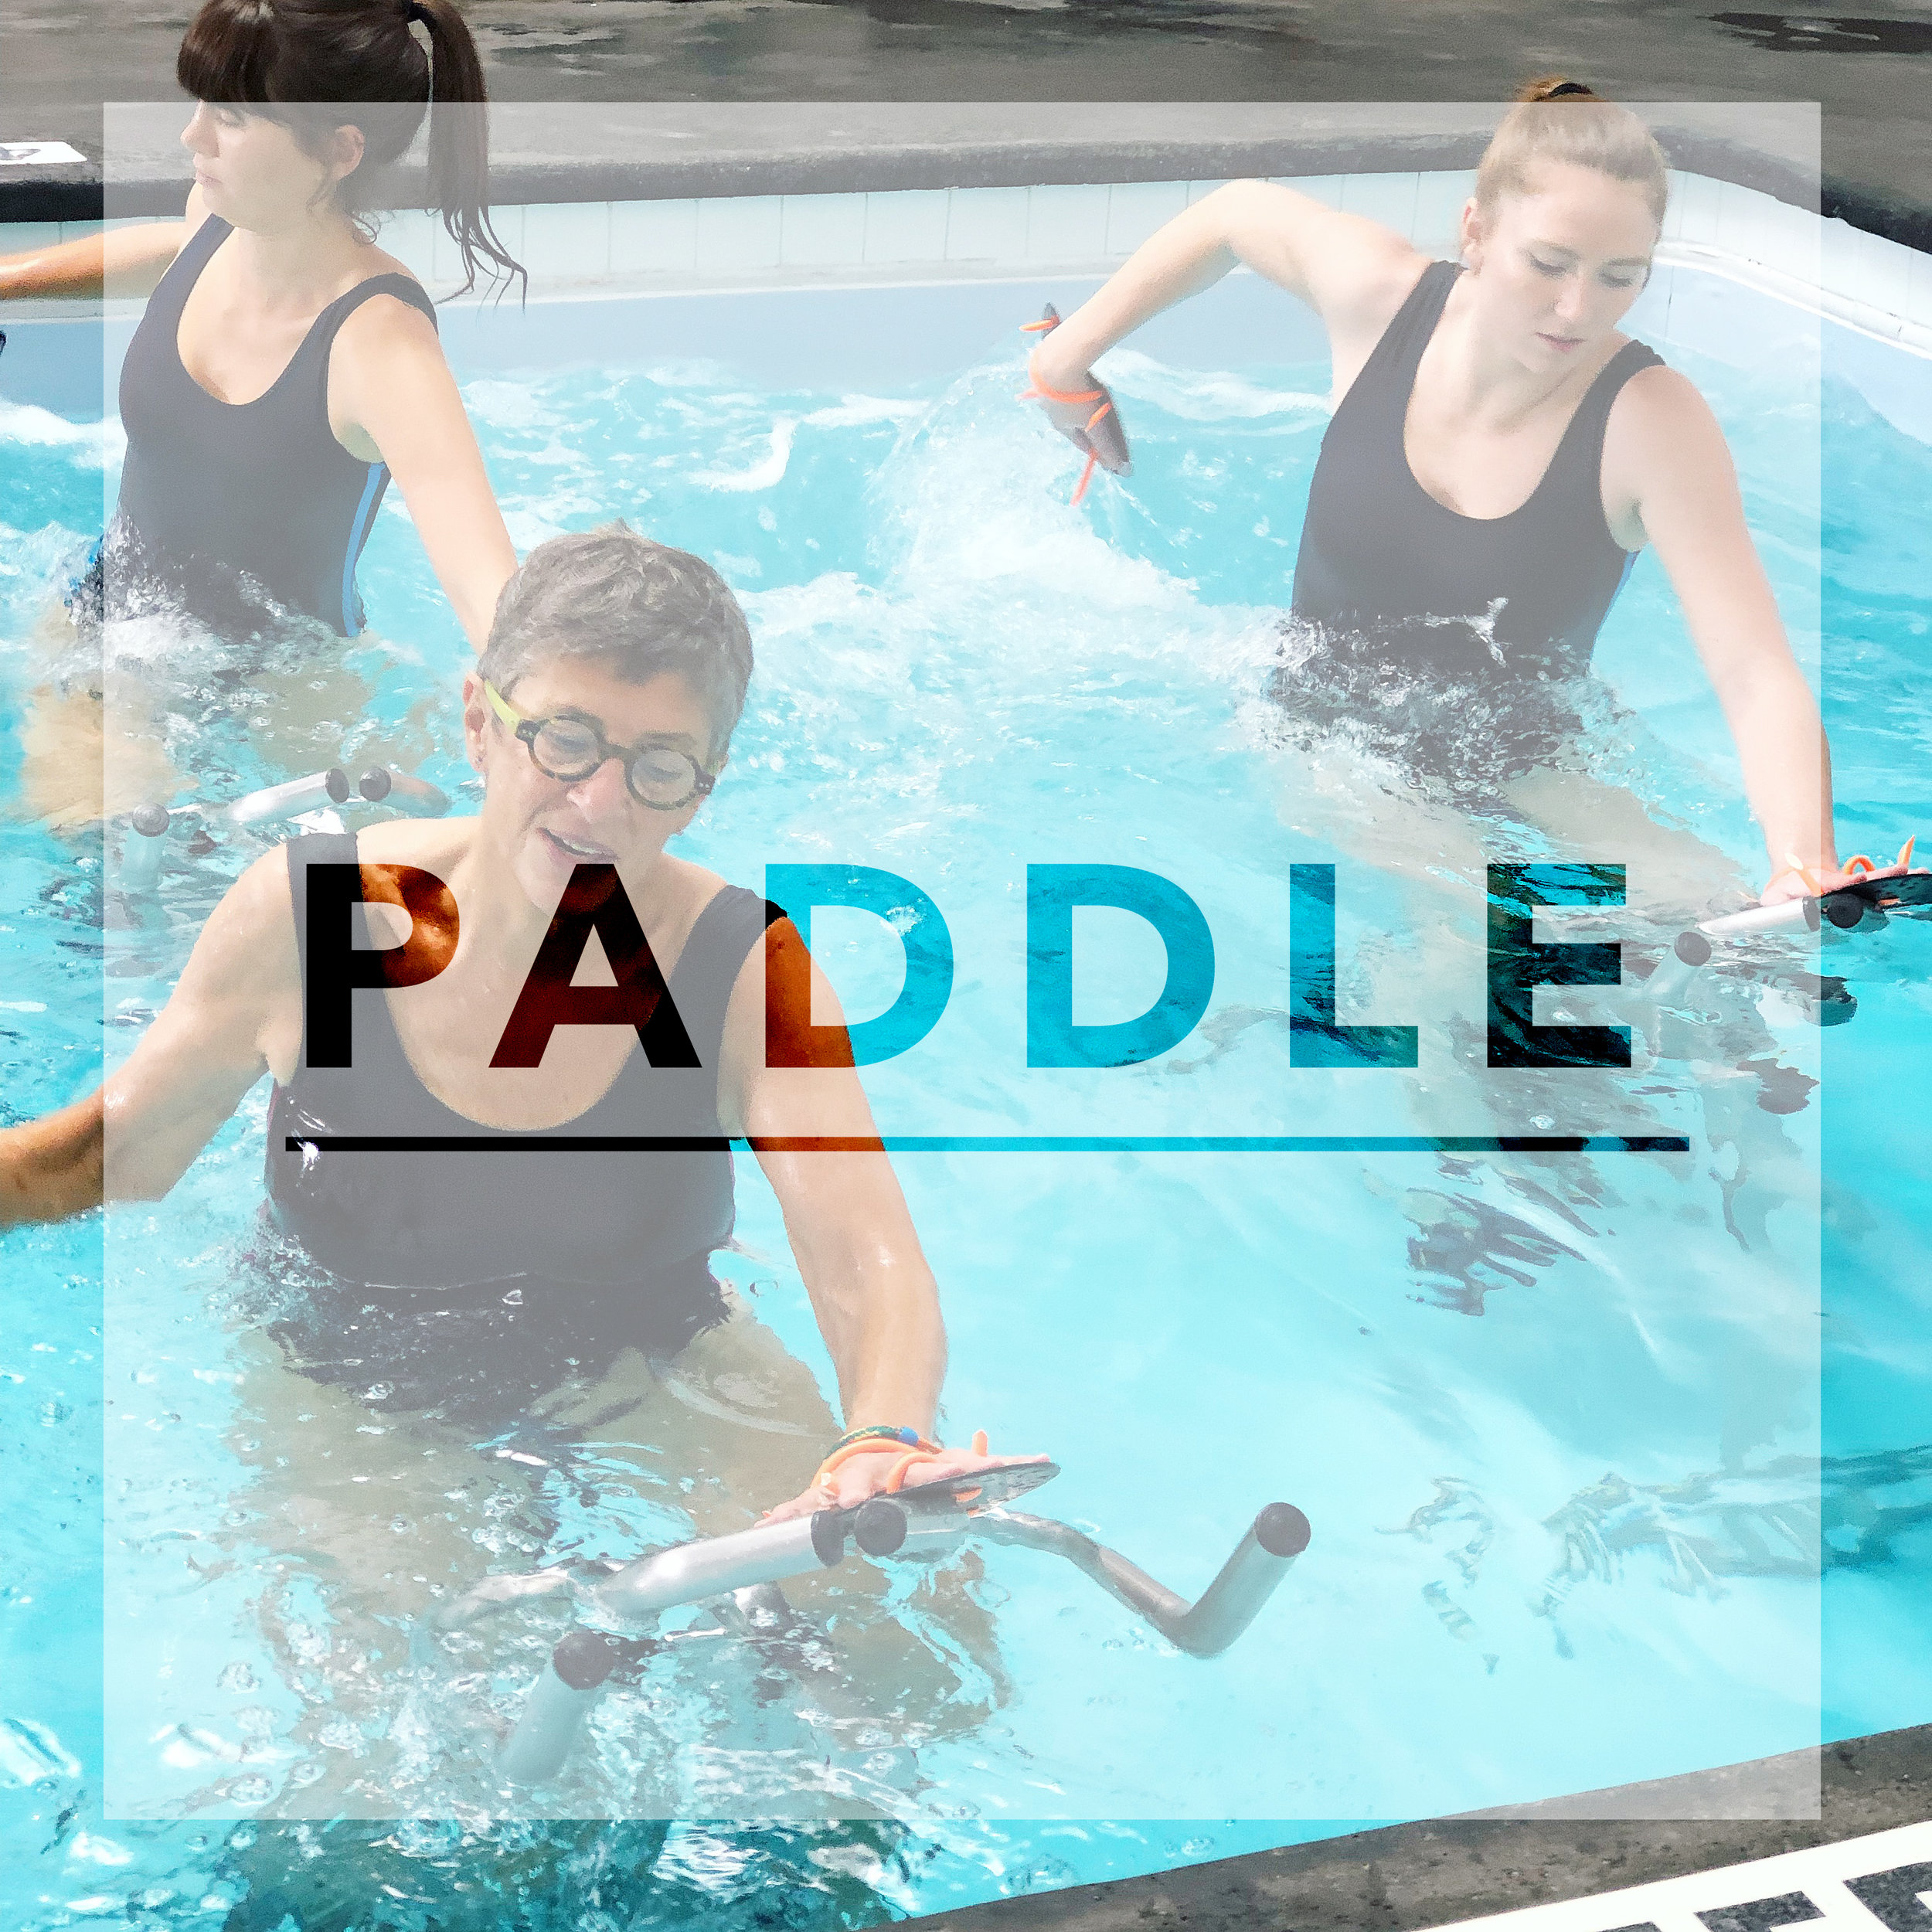 Class description - Use of hand paddles to increase resistance and intensify arm movements and upper-body strengthening while pedaling.| WHAT TO EXPECT |Serious Upper Body Sculpting.| NOT RECOMMENDED FOR |Too intense for Shoulder injuries.